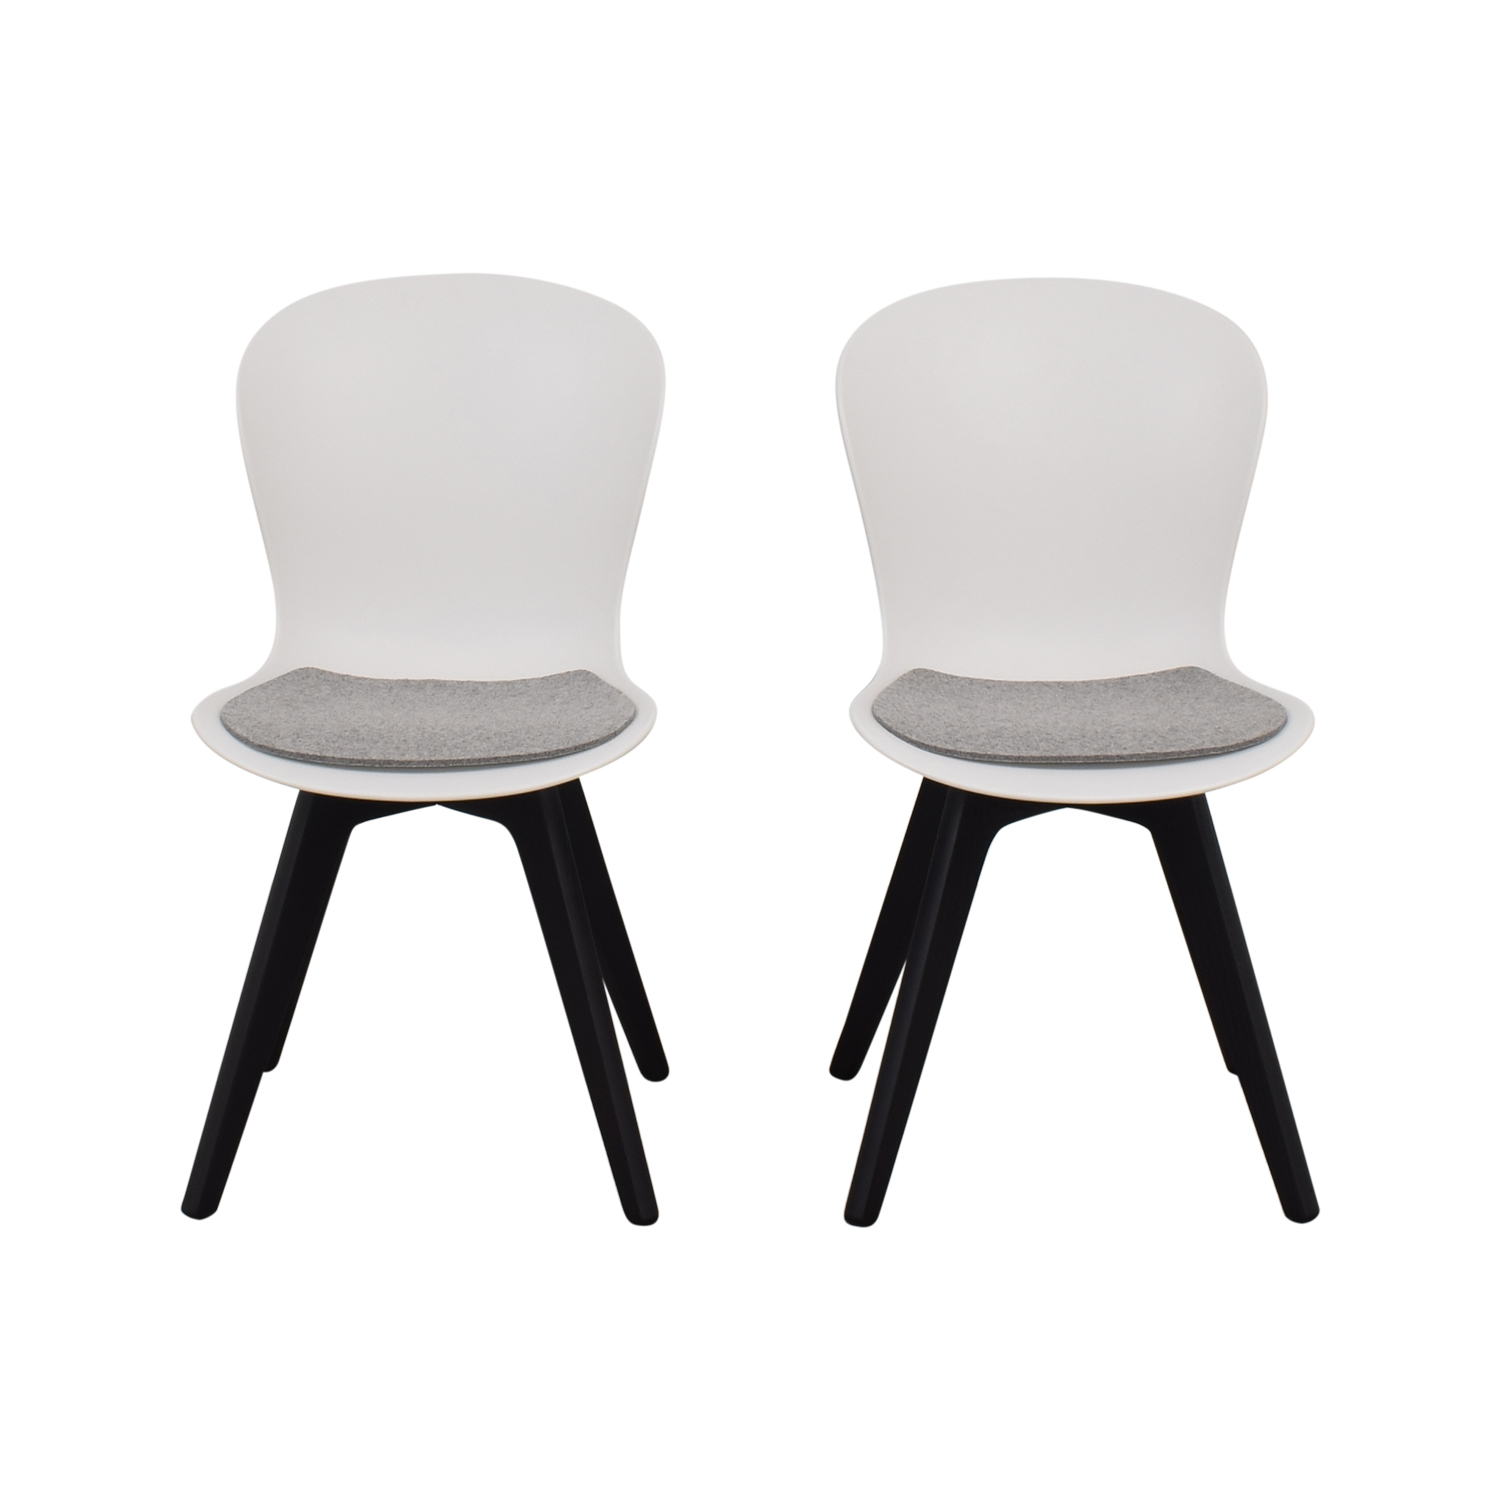 BoConcept BoConcept Adelaide Chairs with Morgan Seat Cushions black & white